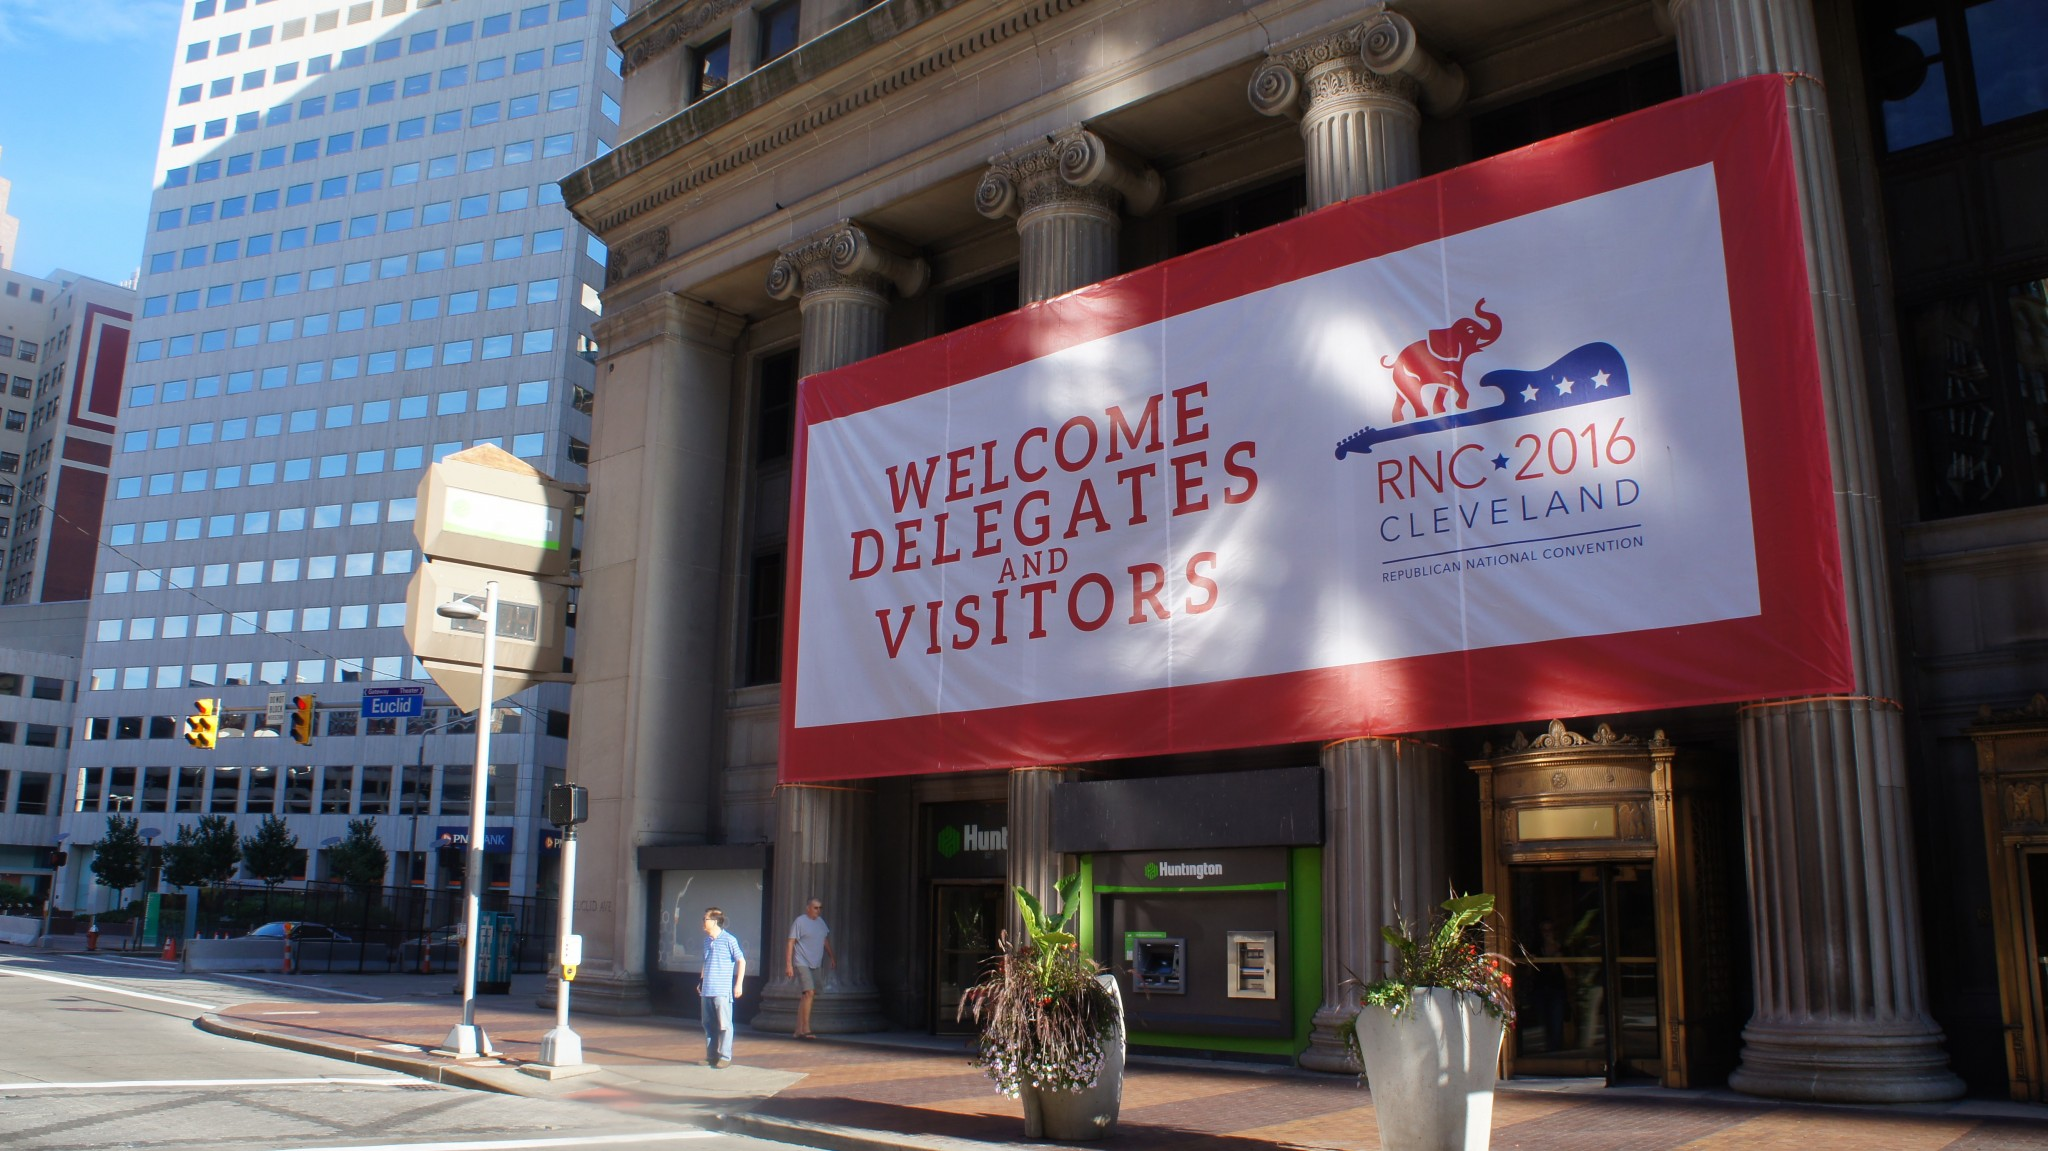 Welcome to Cleveland. The RNC begins July 18, 2016